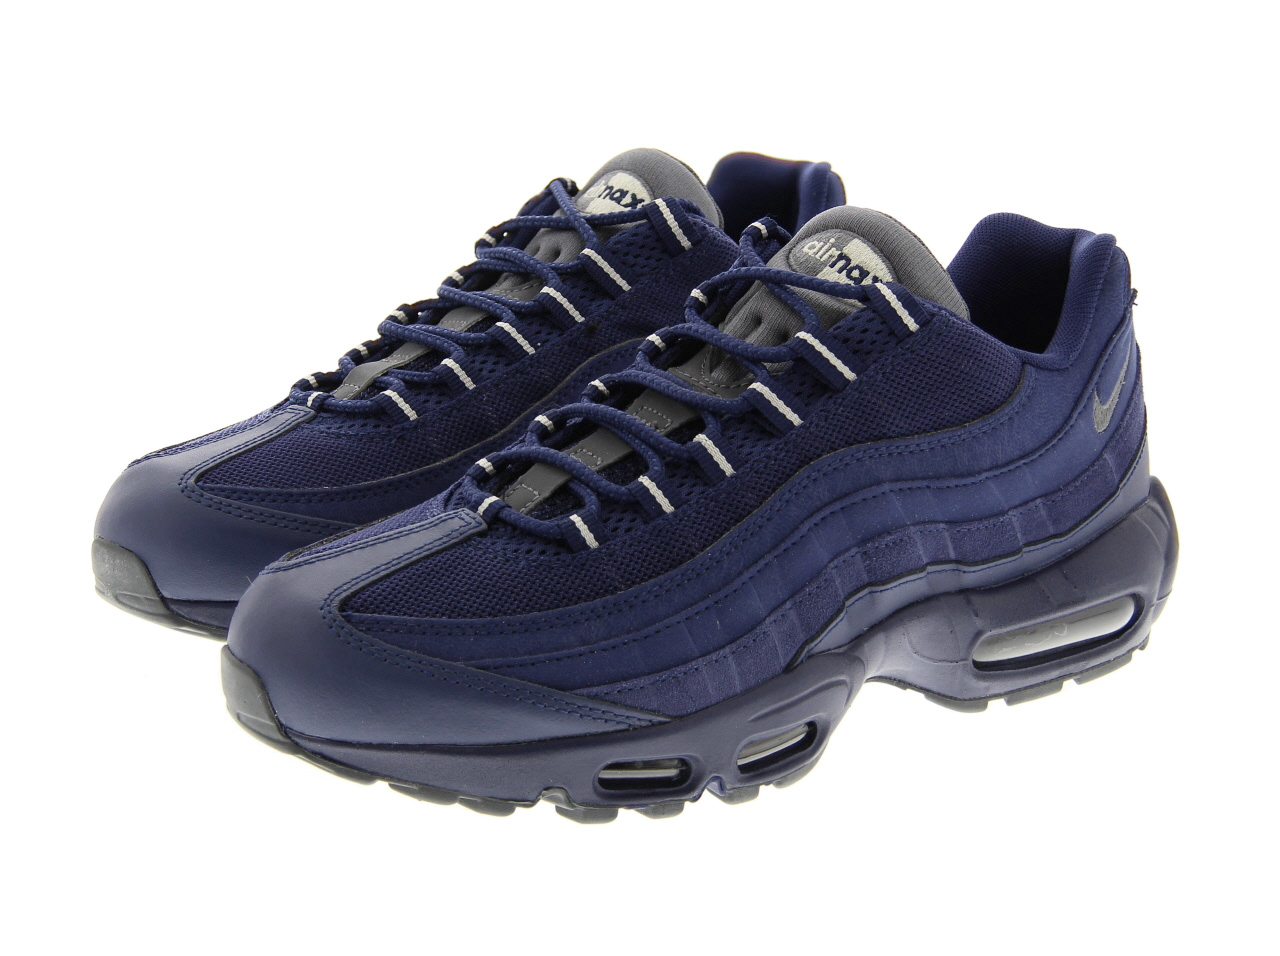 NIKE AIR MAX 95 ESSENTIAL (749766-404) LOYAL BLUE/DARK GREY-LGHT BONE